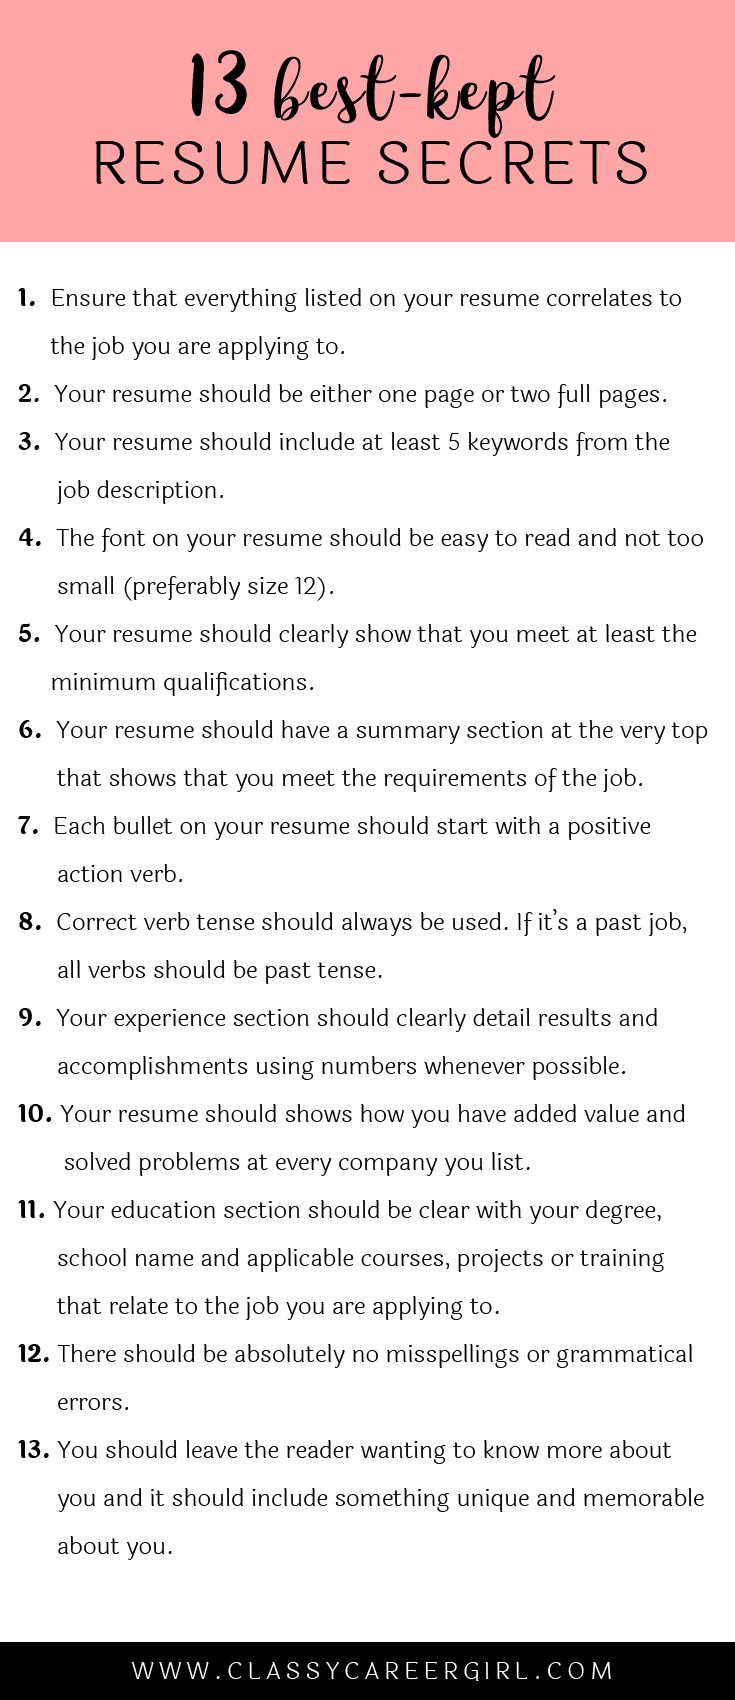 Opposenewapstandardsus  Inspiring  Ideas About Resume On Pinterest  Cv Format Resume Cv And  With Entrancing Some Hiring Managers Will Toss Your Resume Out If You Dont Know These  With Amazing Powerpoint Resume Also Law School Resume Sample In Addition Grad School Resume Template And Resume Website Examples As Well As How Many Pages For A Resume Additionally Spanish Resume From Pinterestcom With Opposenewapstandardsus  Entrancing  Ideas About Resume On Pinterest  Cv Format Resume Cv And  With Amazing Some Hiring Managers Will Toss Your Resume Out If You Dont Know These  And Inspiring Powerpoint Resume Also Law School Resume Sample In Addition Grad School Resume Template From Pinterestcom